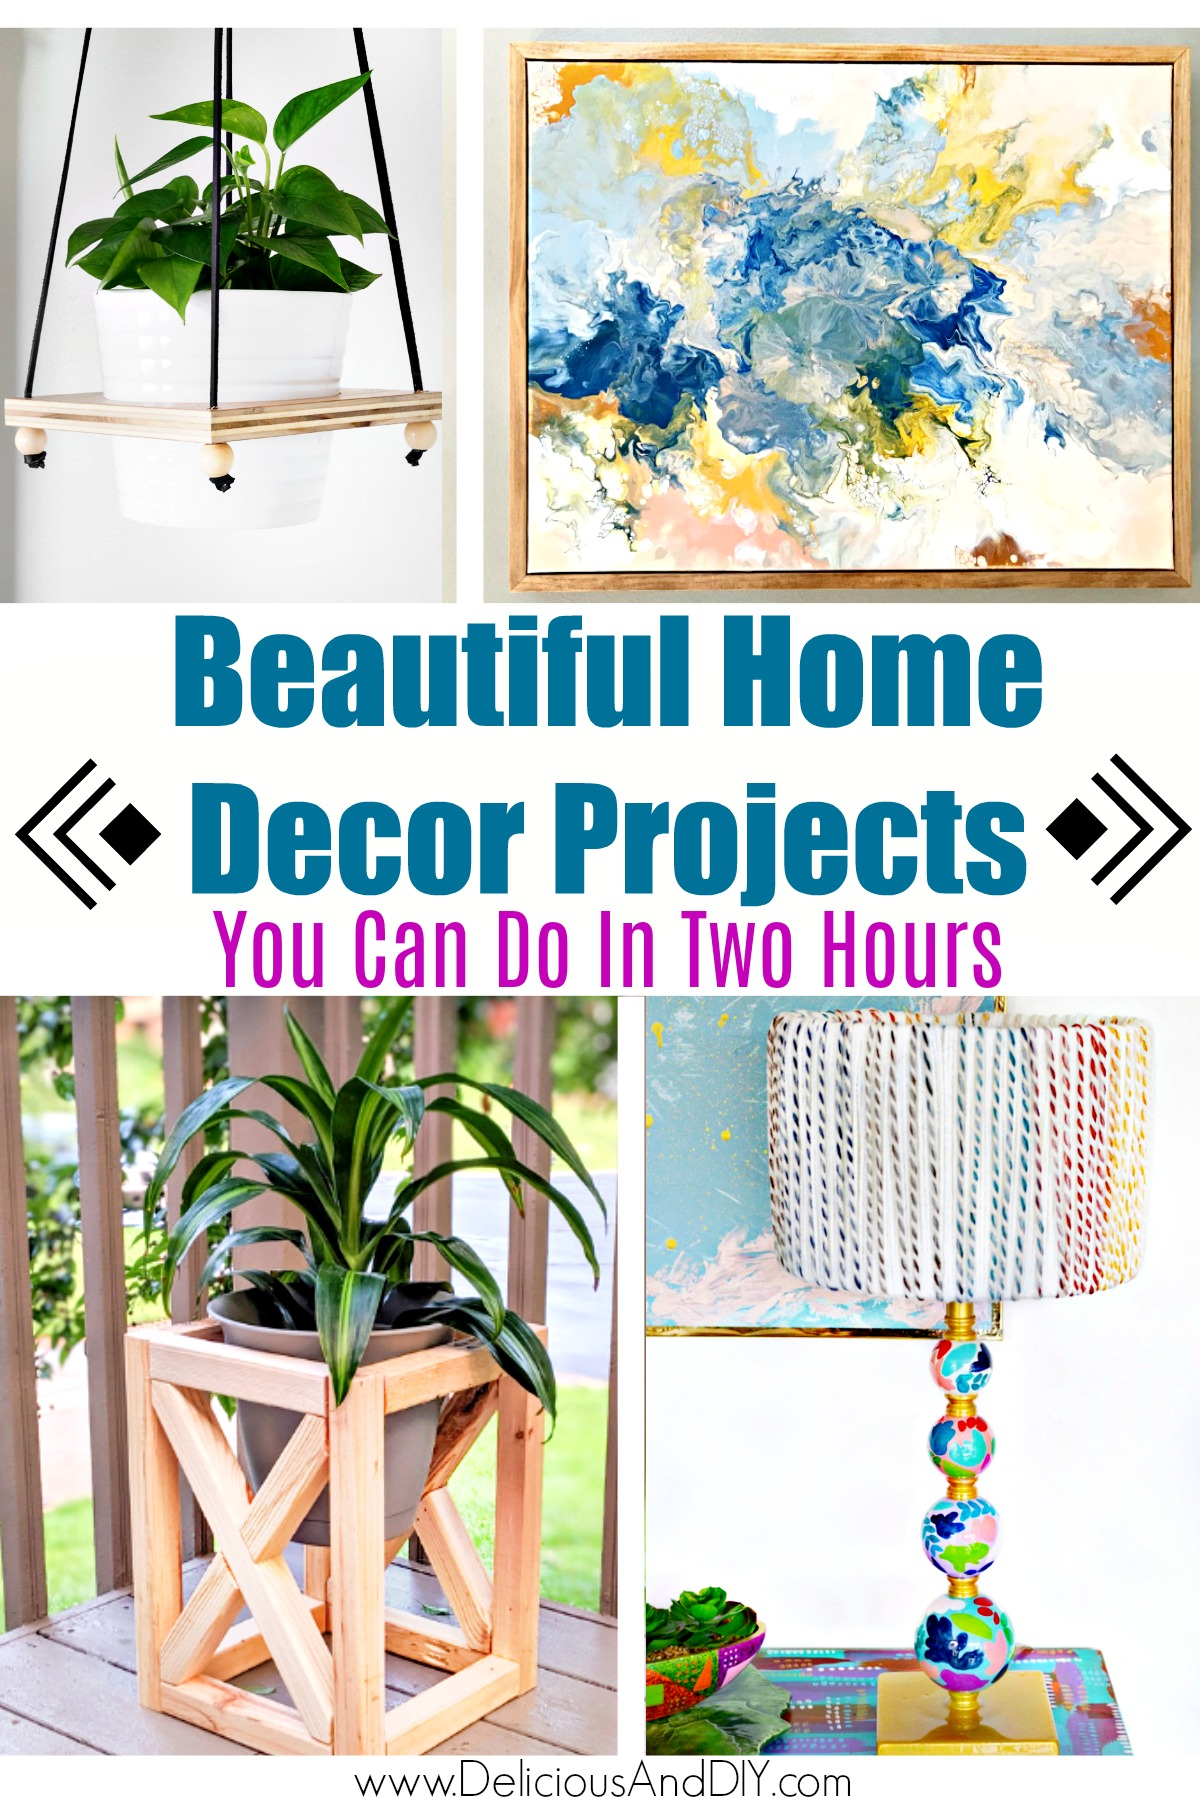 Home Design Ideas Youtube: Home Decorating Ideas On A Budget